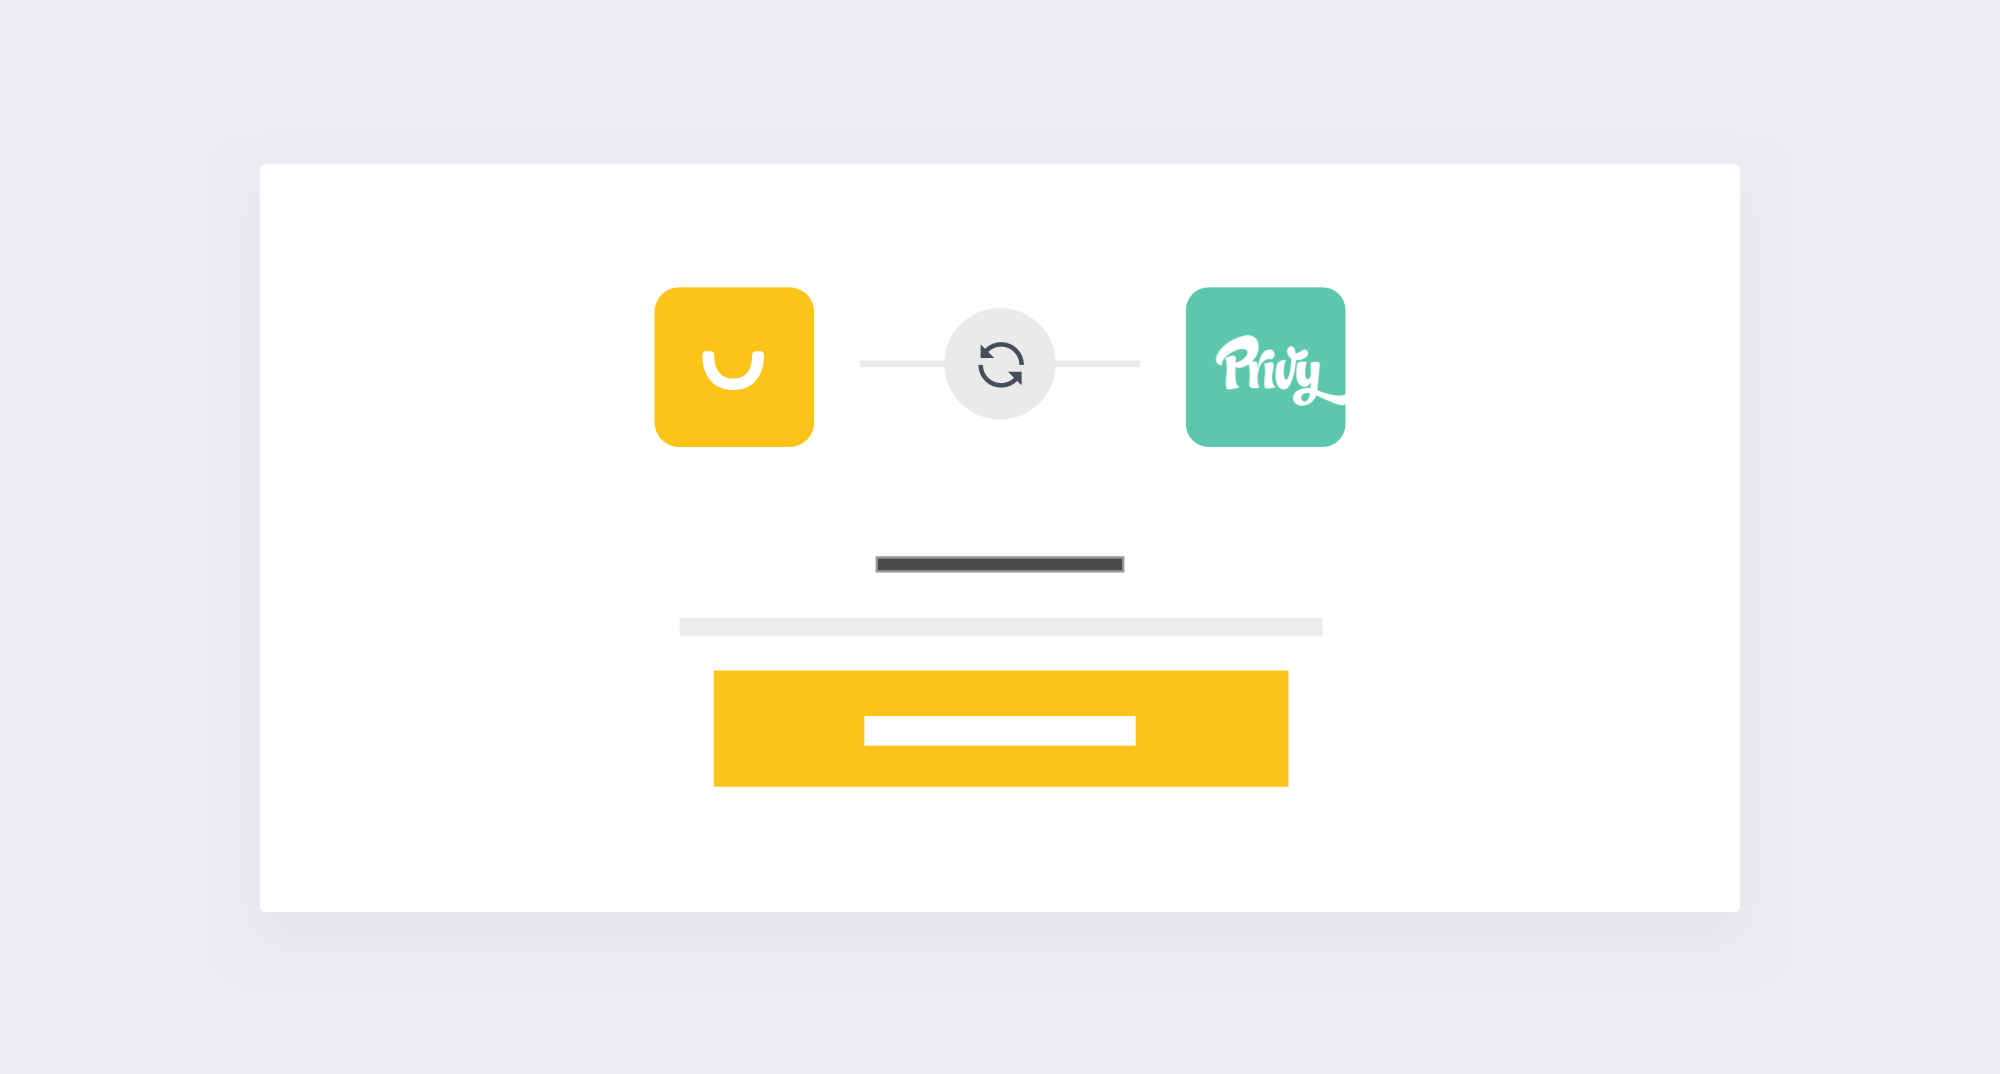 New Smile App Privy - Graphic to sync smile and privy accounts